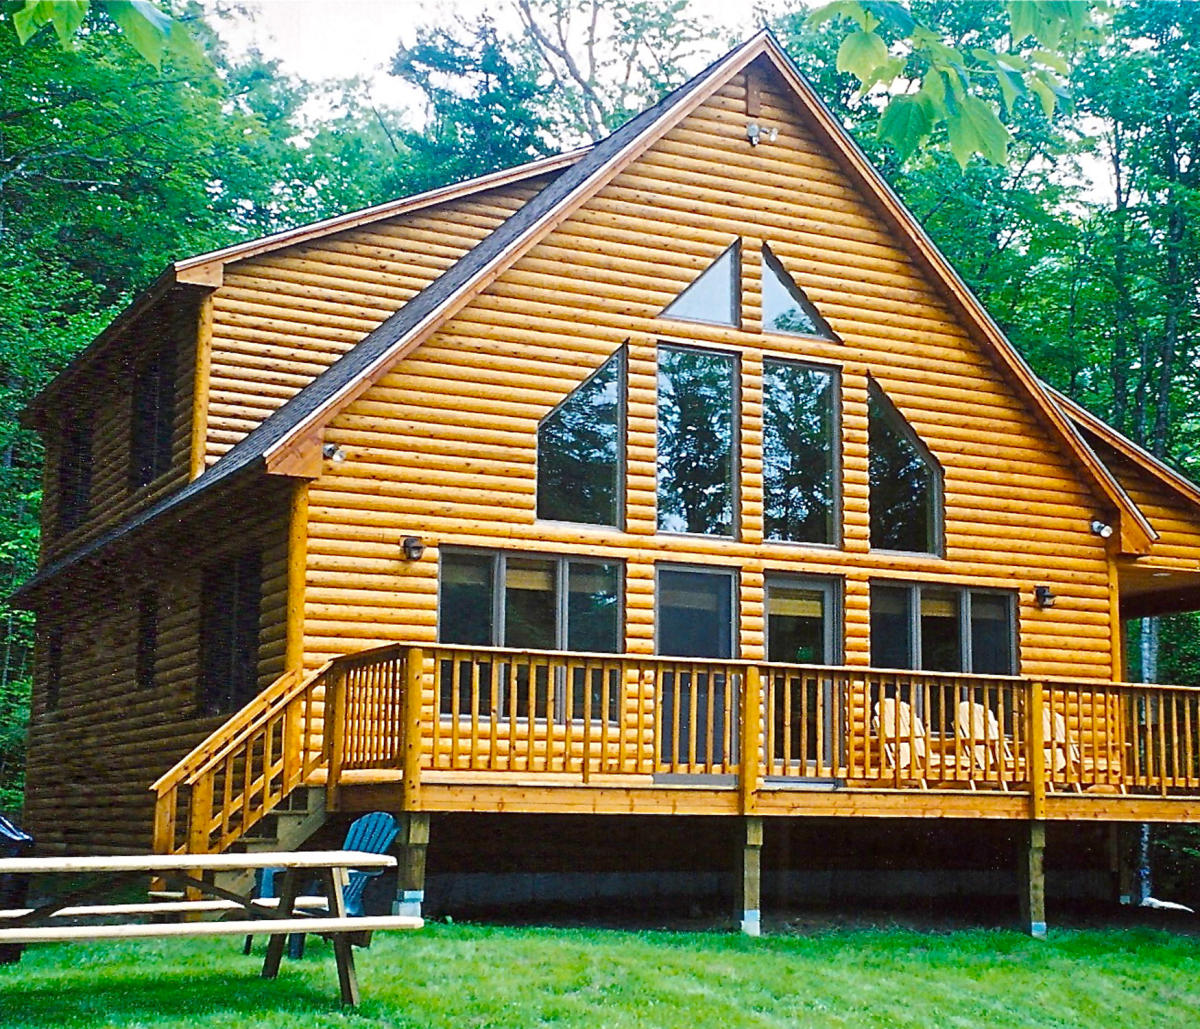 Appartment Rental: Cozy Moose Lakeside Cabin Rentals